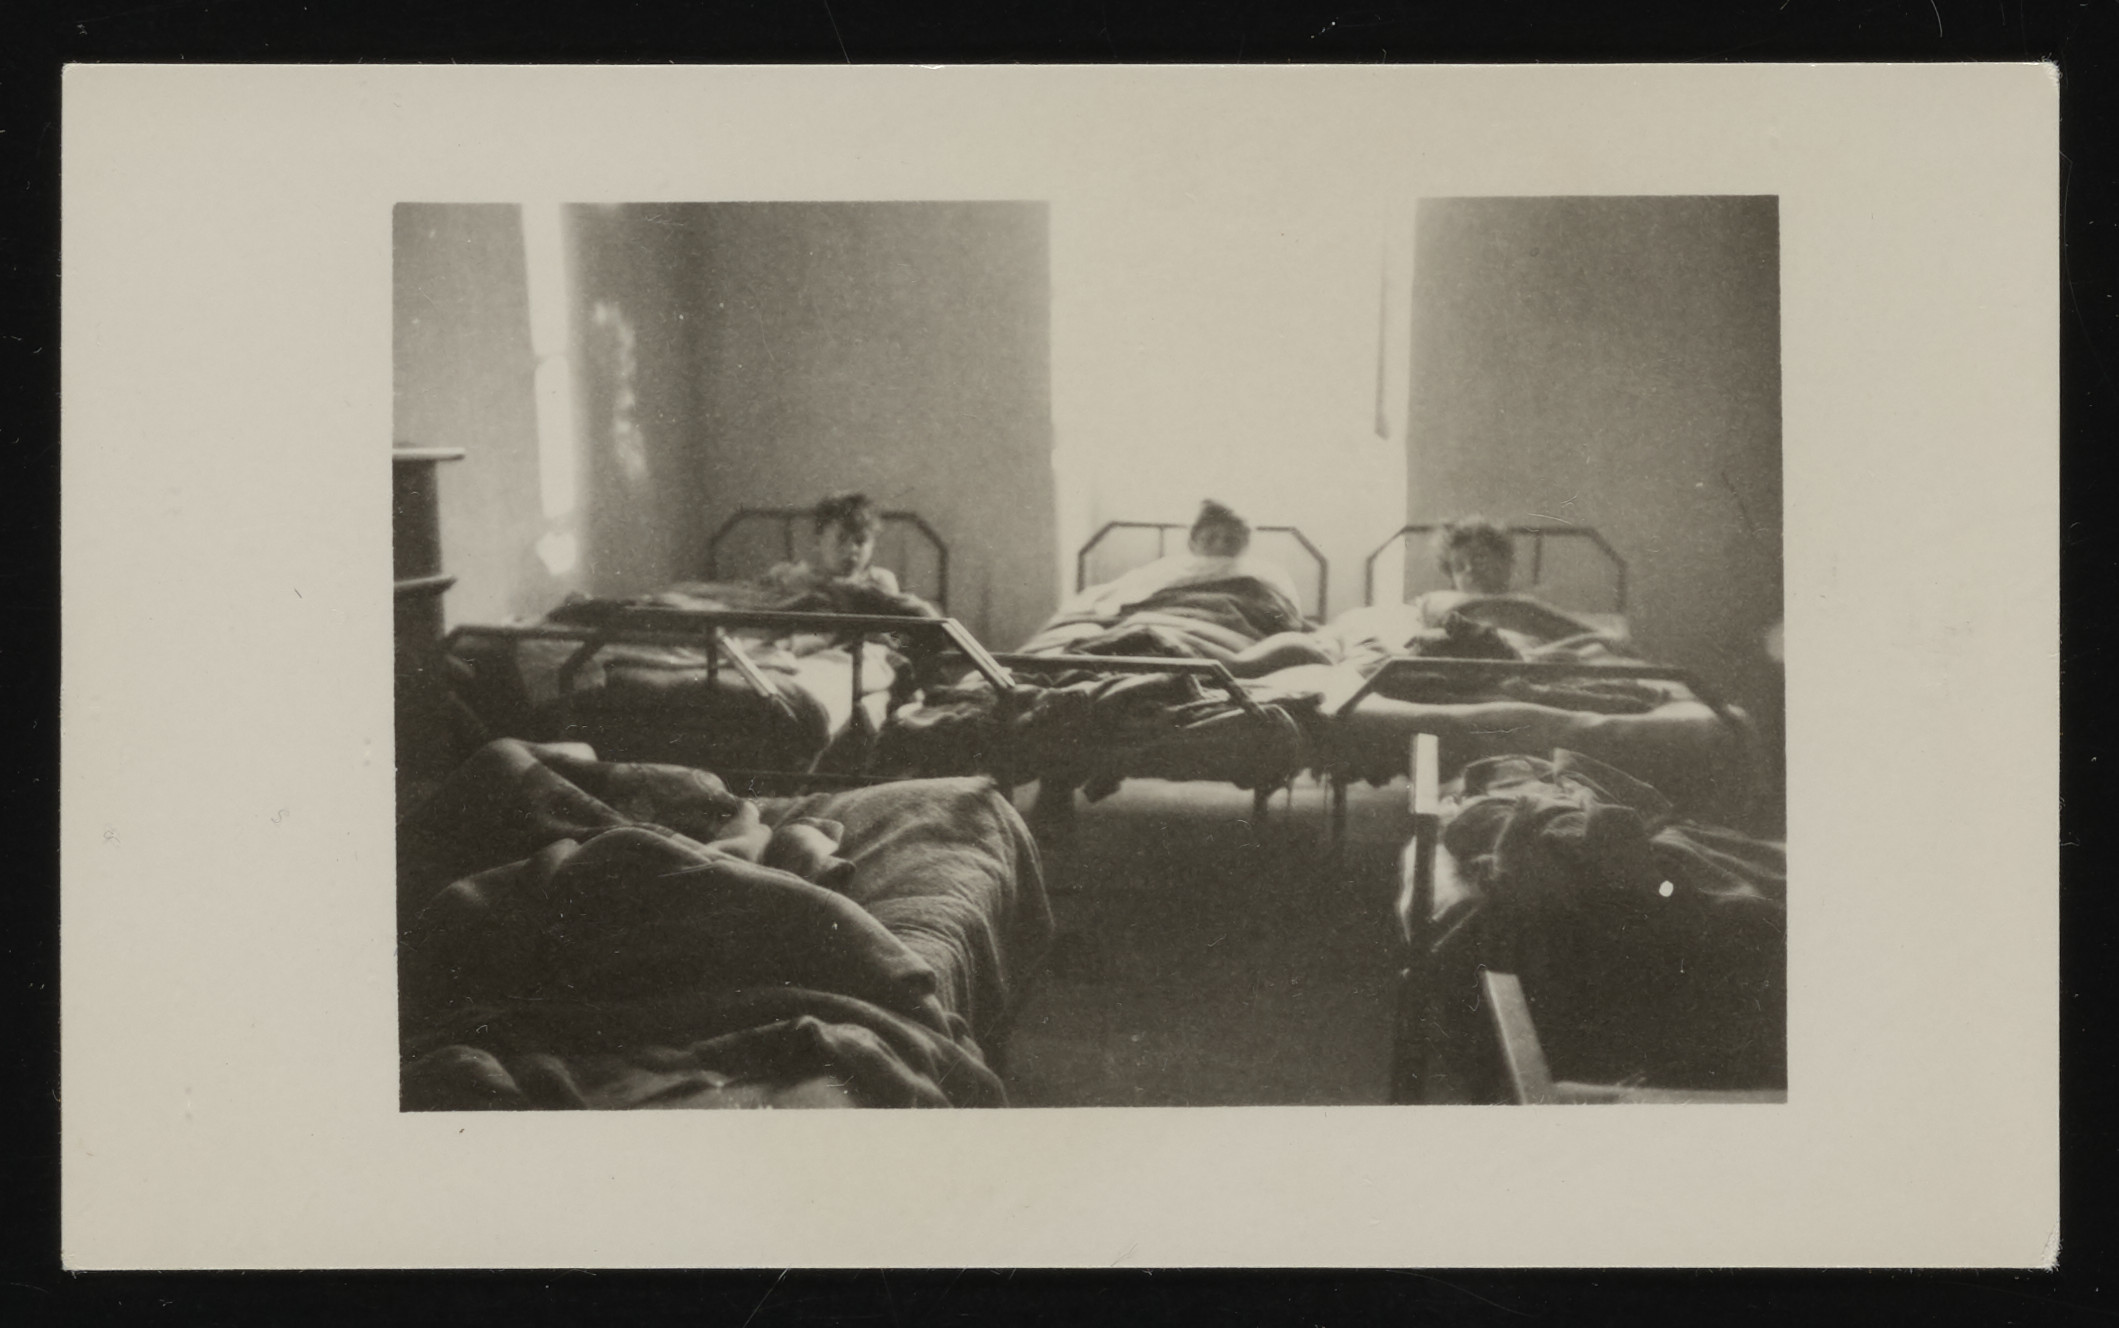 Younger boys share a bedroom in the La Hille children's home.